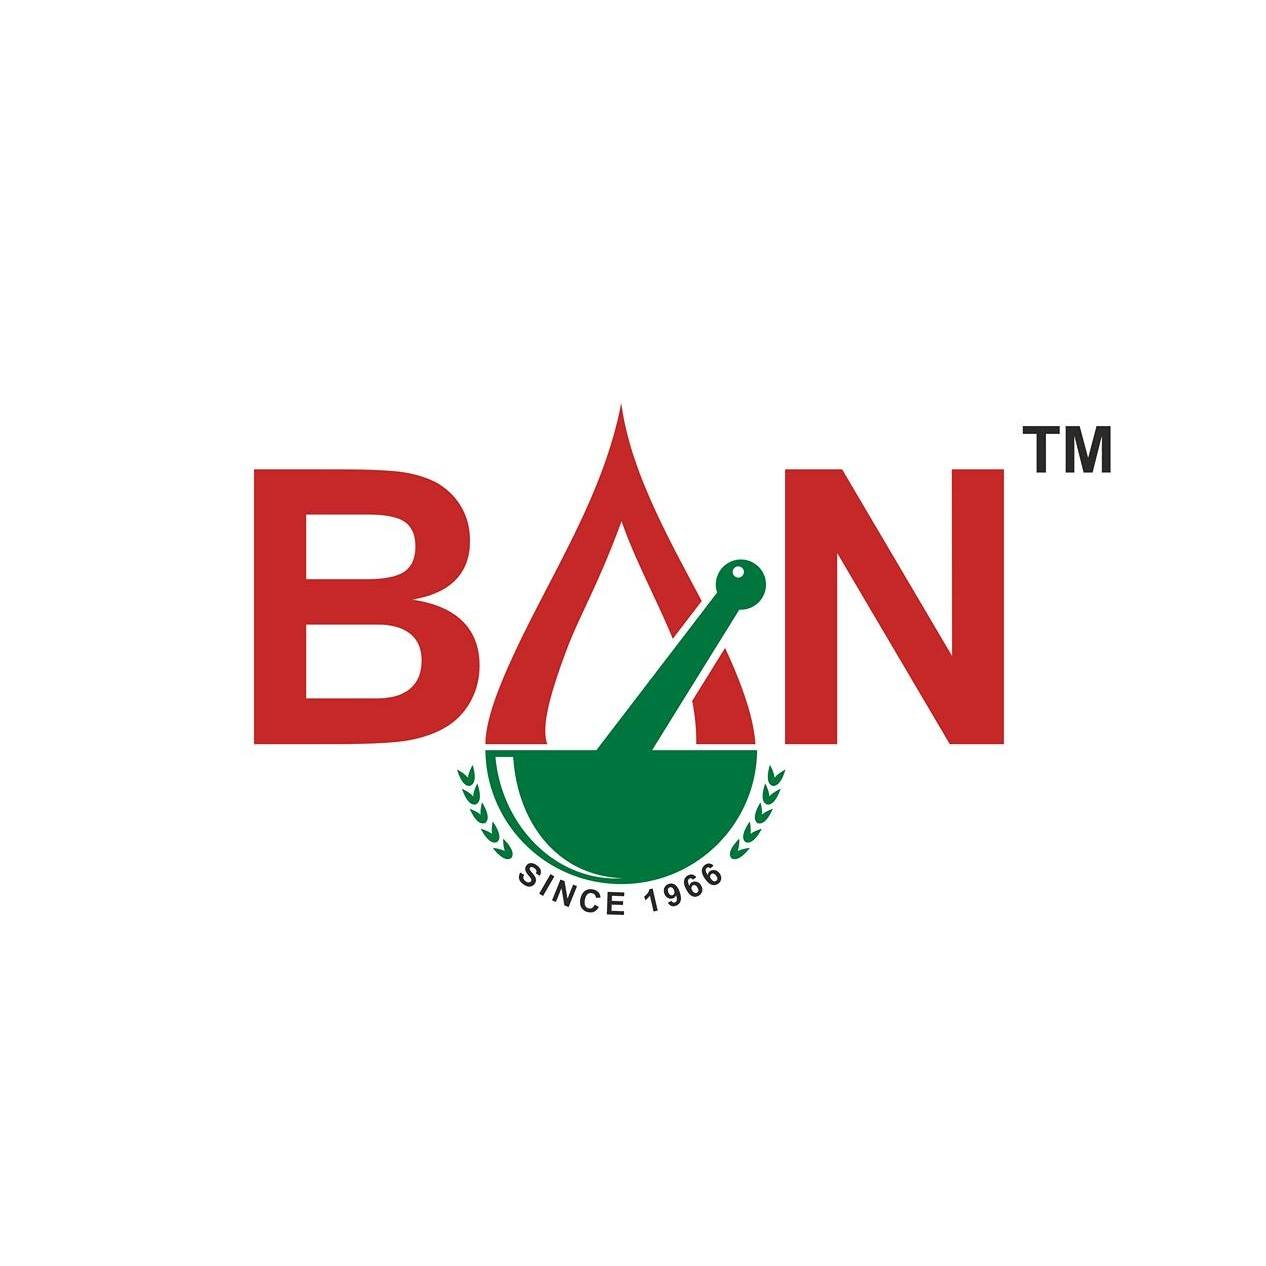 Ban Labs Launches Groundbreaking Care Green Tea After The Success of Sesa Oil